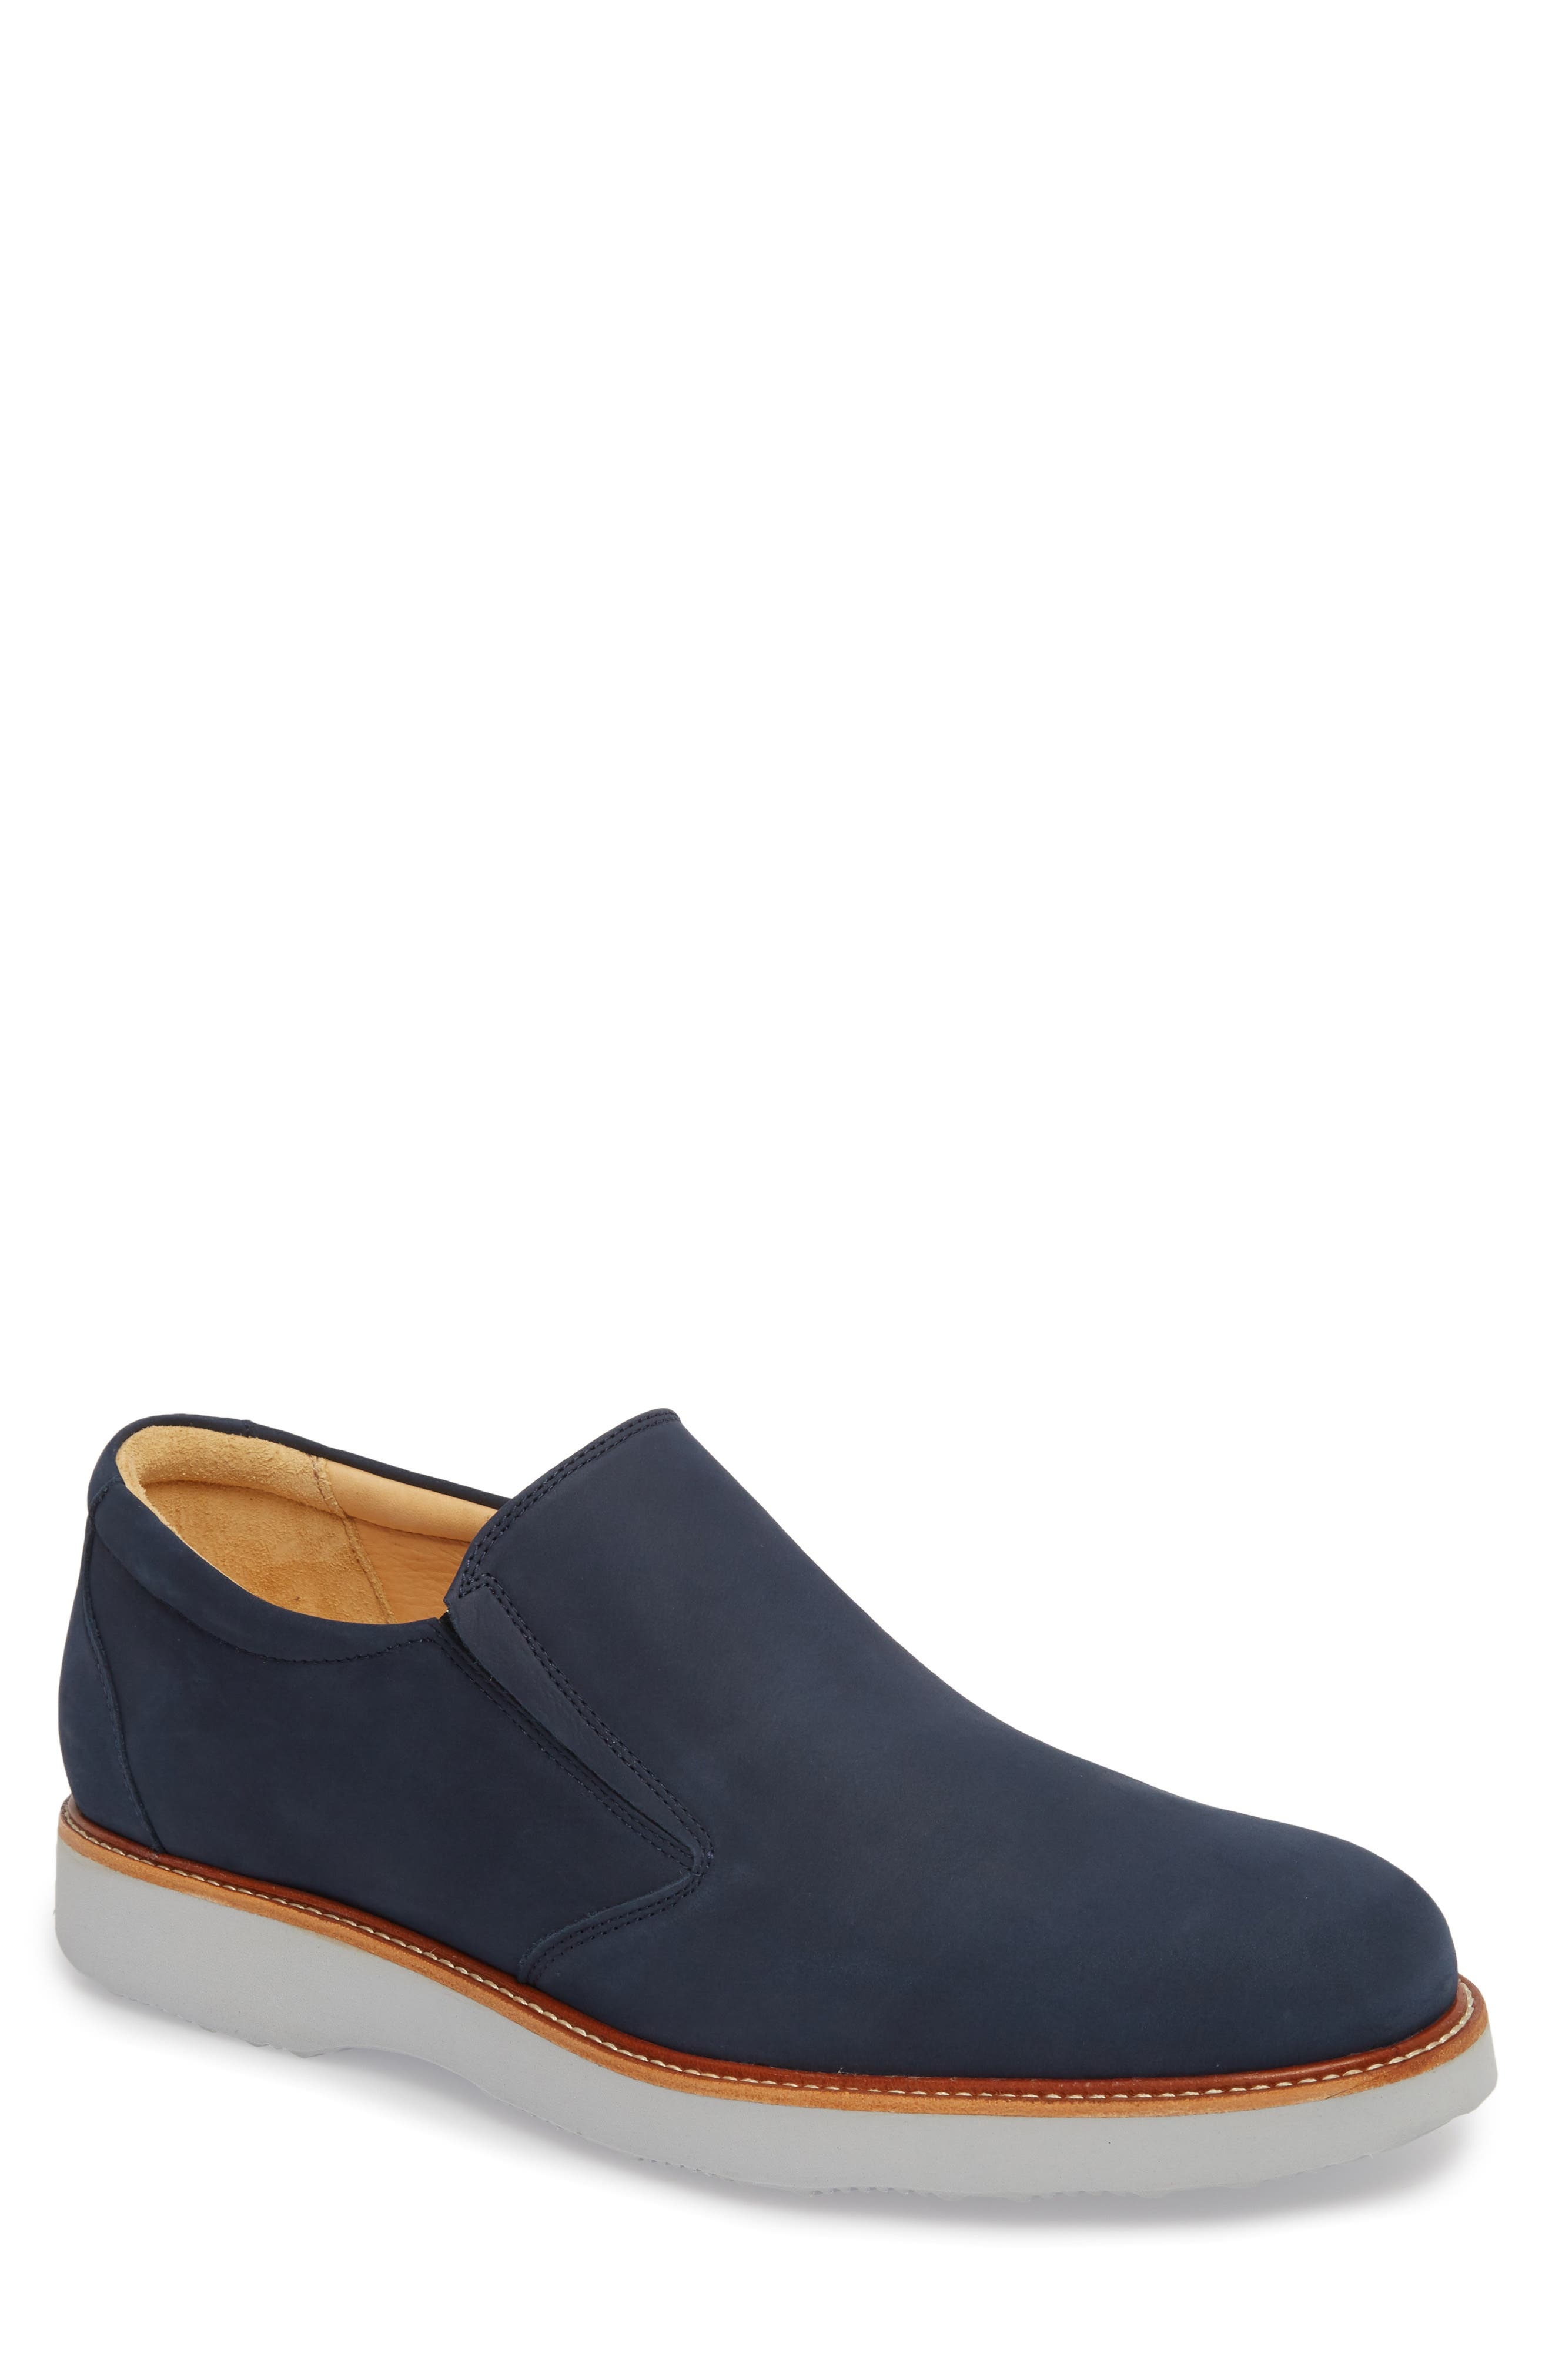 'Frequent Traveler' Slip-On,                             Main thumbnail 1, color,                             Navy Nubuck Leather